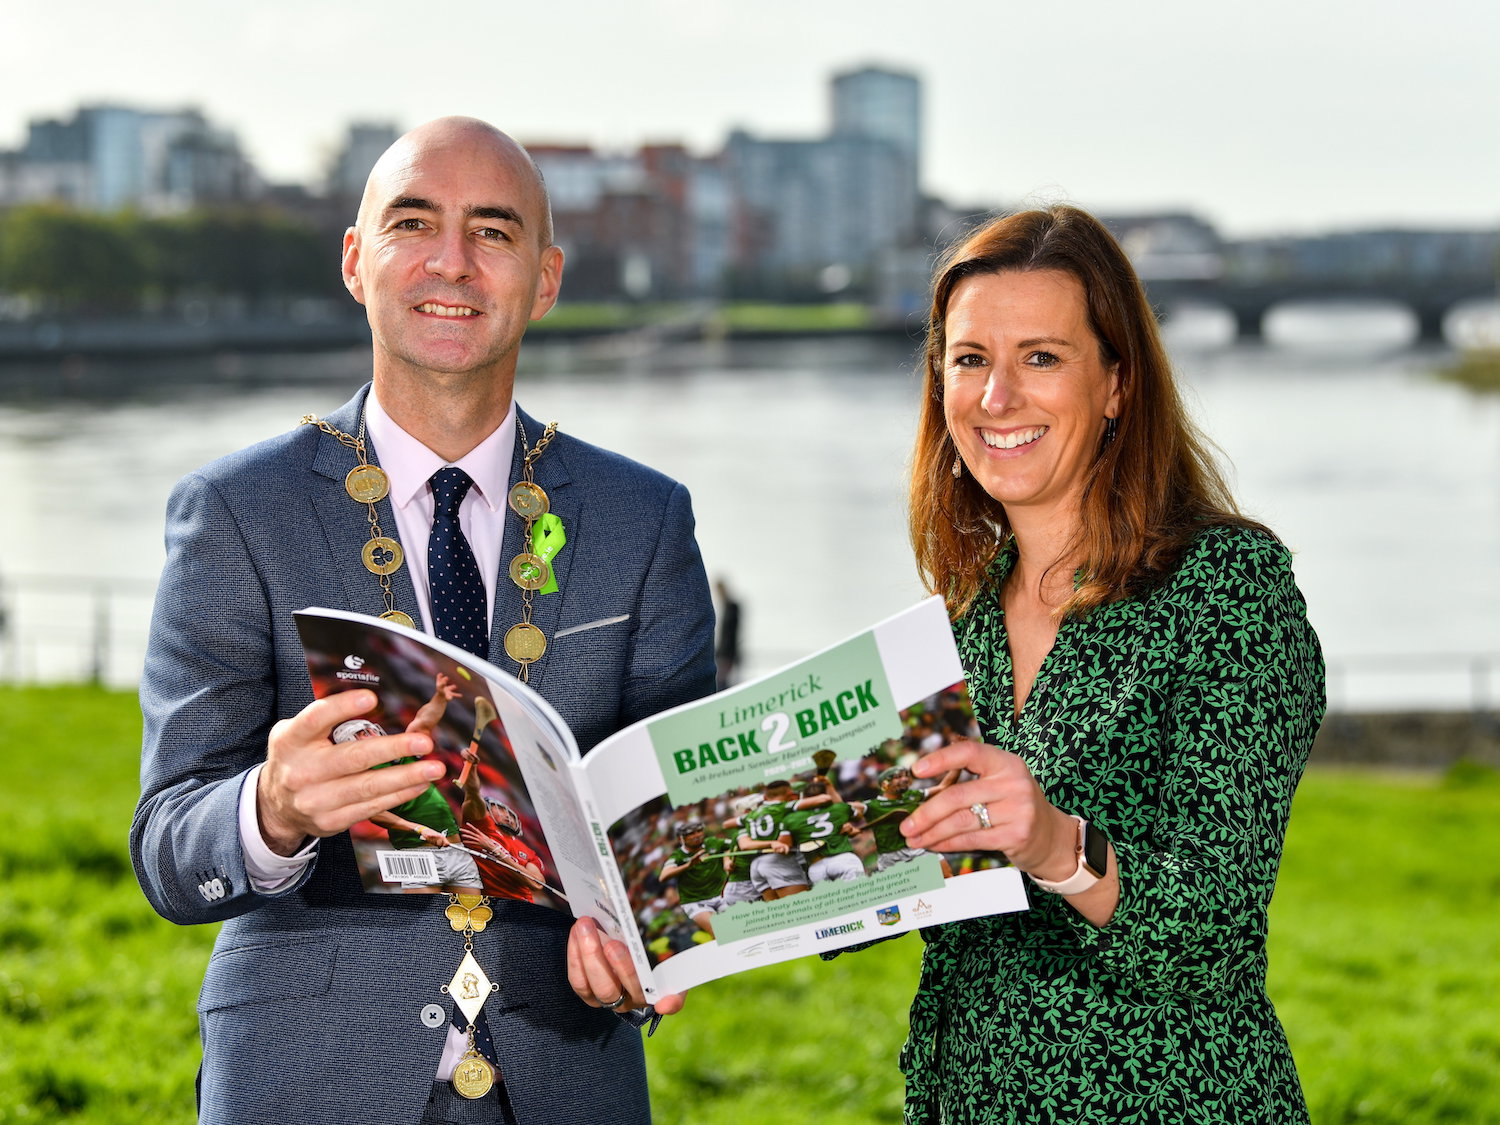 Limerick Back 2 Back Daniel Butler, Mayor of the City and County of Limerick, with Laura Ryan, Head of Marketing and Communications with Limerick City and County Council. Picture: Diarmuid Greene/Sportsfile